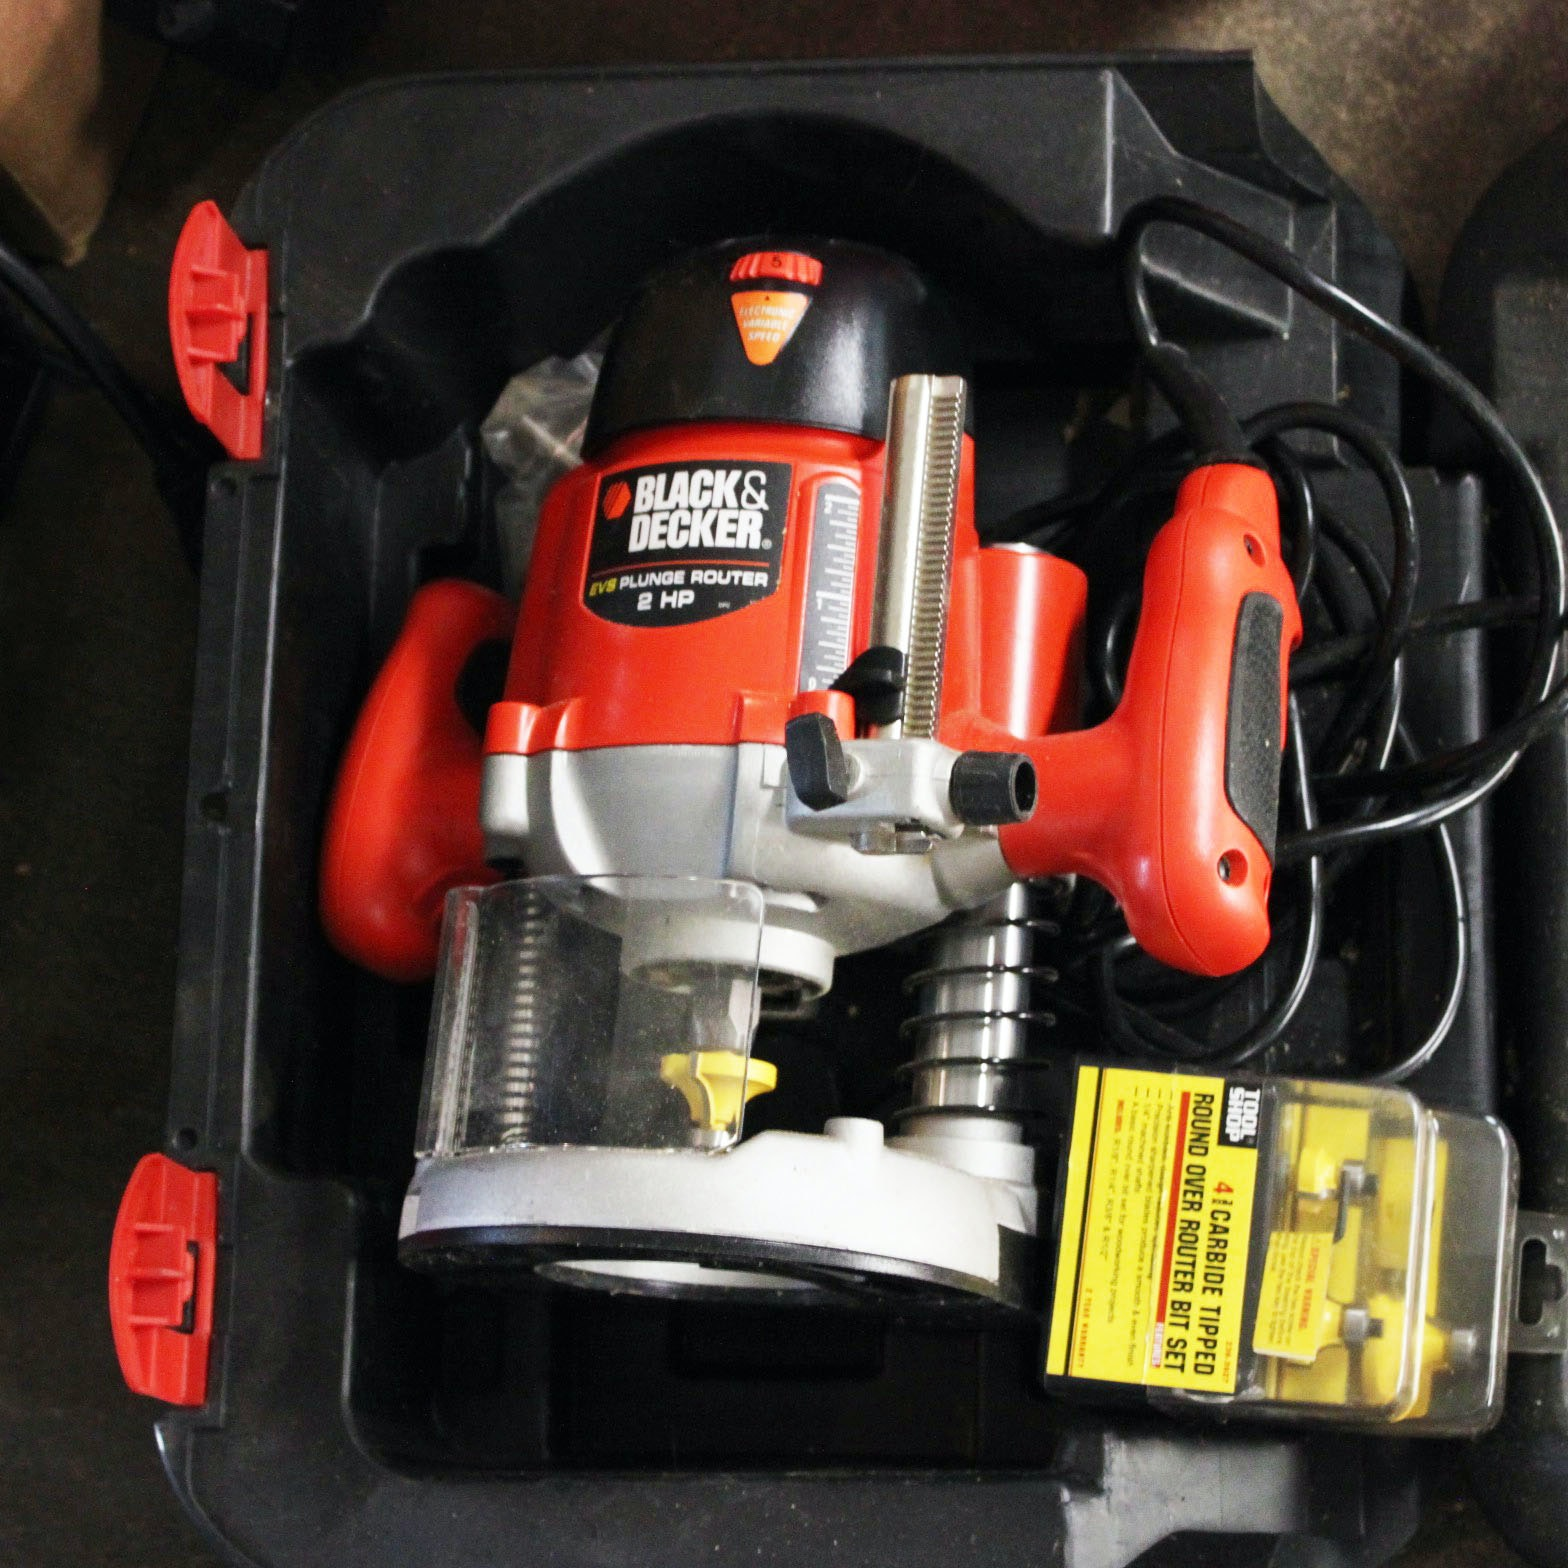 Black & Decker Plunge Router